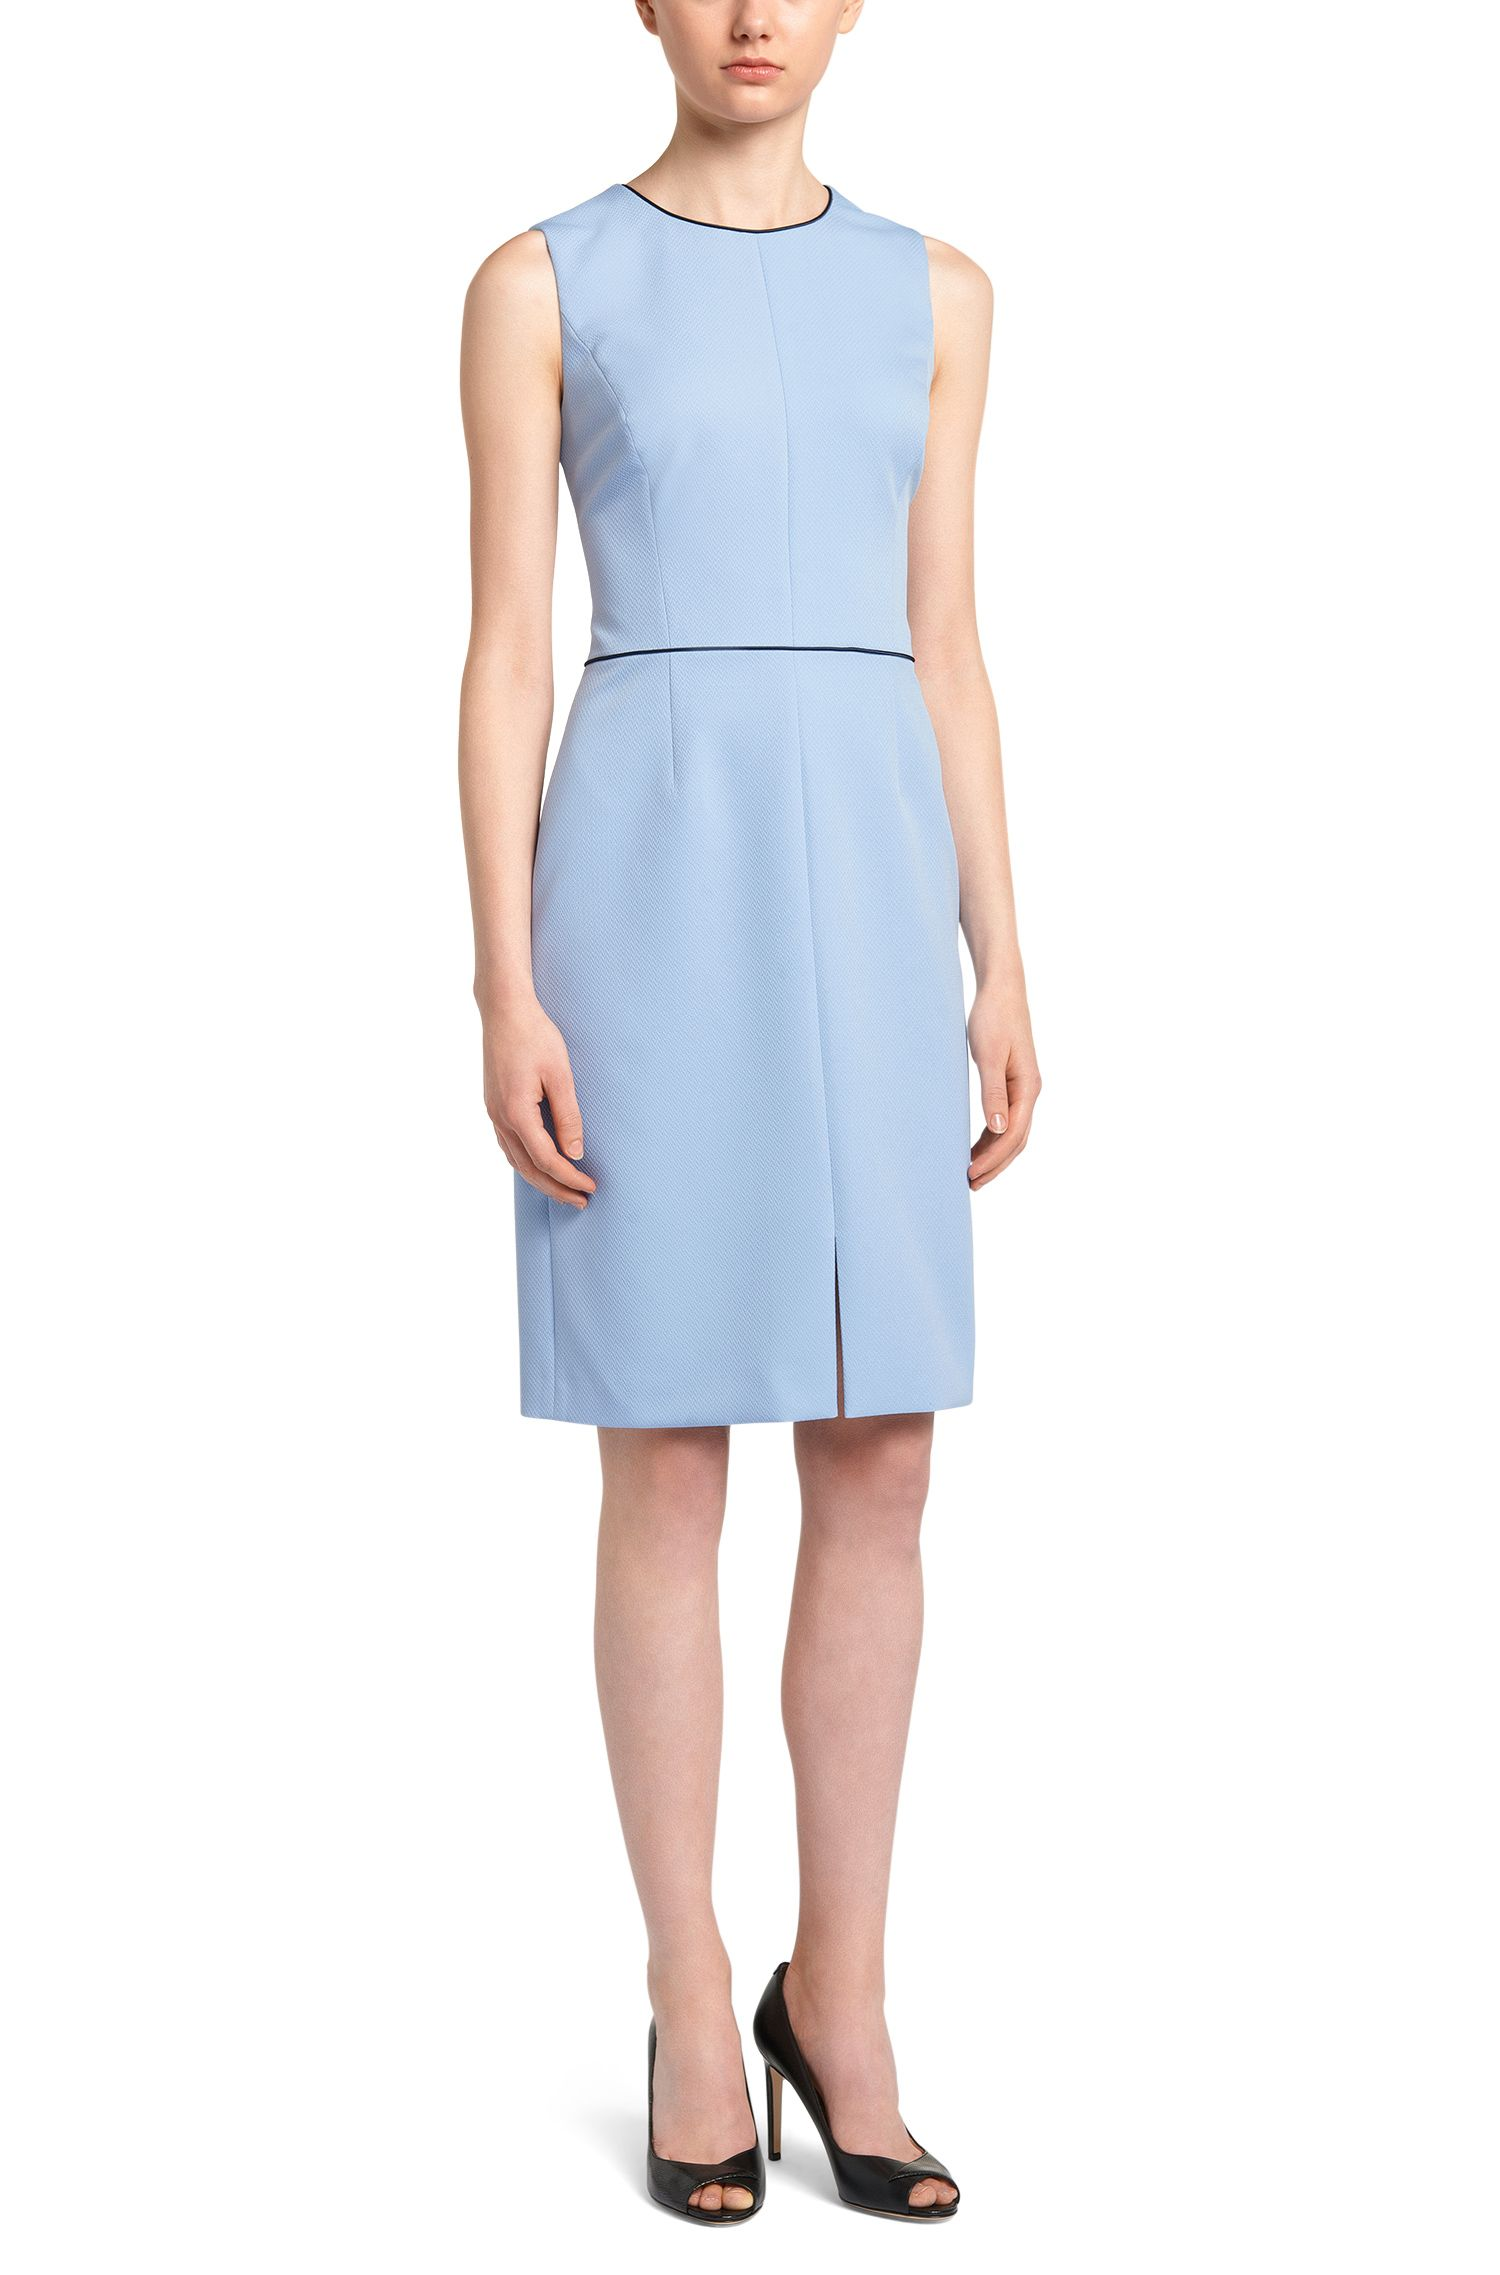 Textured Sheath Dress | Klenni